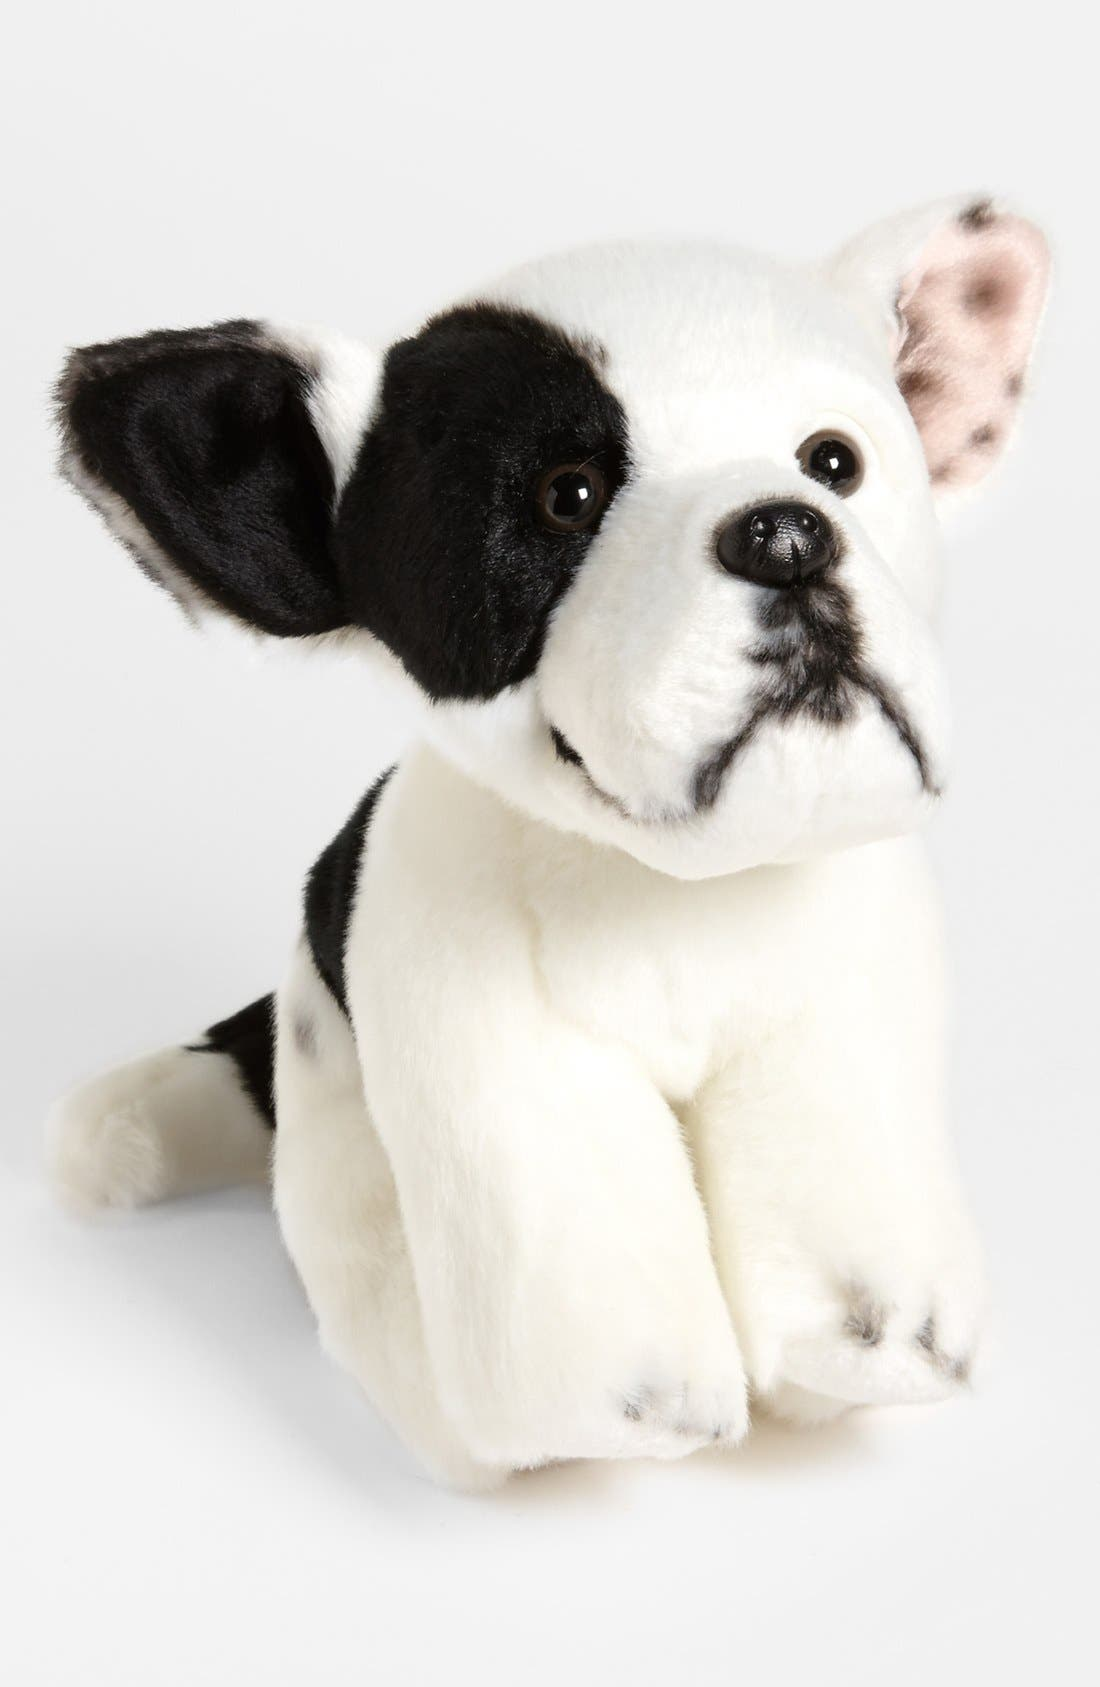 Alternate Image 1 Selected - Gund 'Jonny Justice - Top Dog' Stuffed Animal